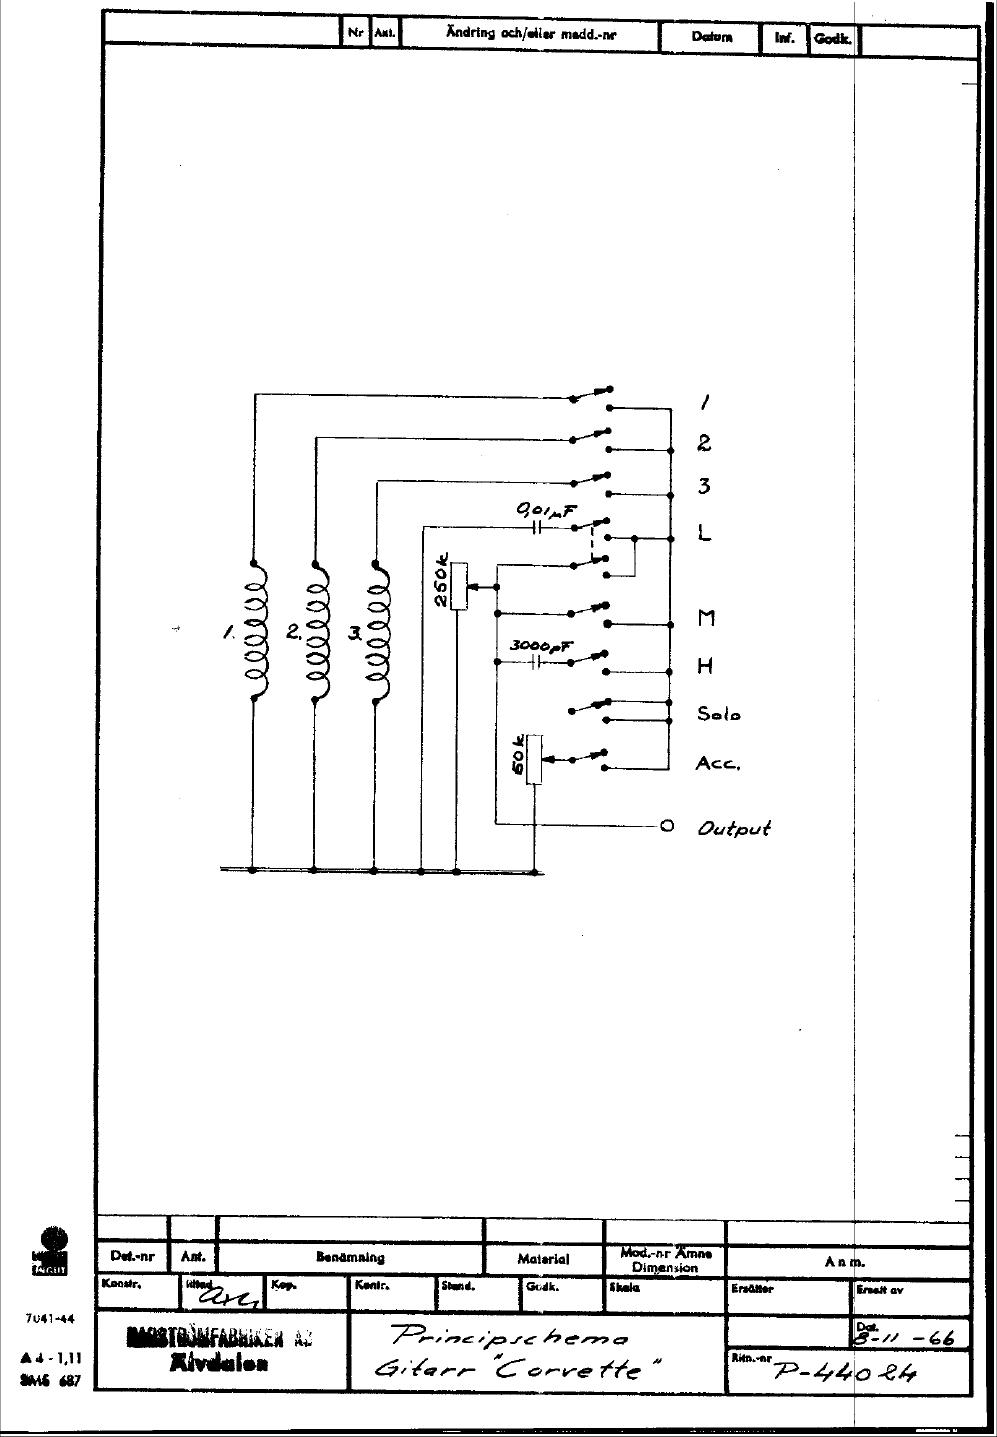 Hagstrom Wiring Diagrams Trusted Silvertone Diagram Guitar Drawings Switching System Corvette 1966pict